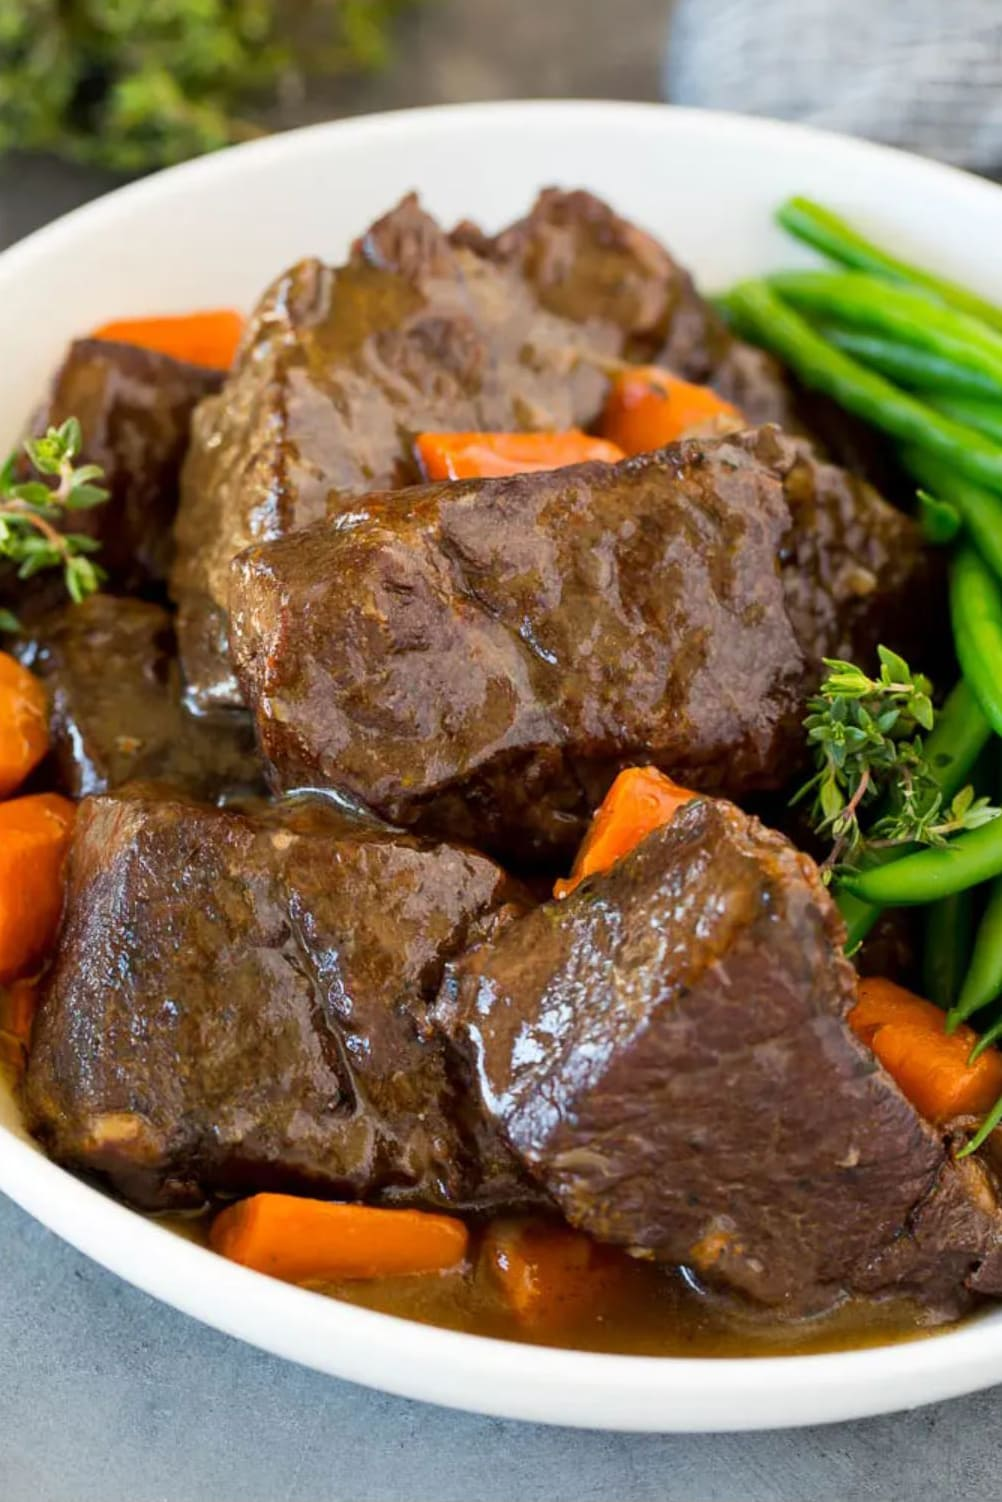 Short ribs covered in a type of gravy on a plate with carrots and green beans.